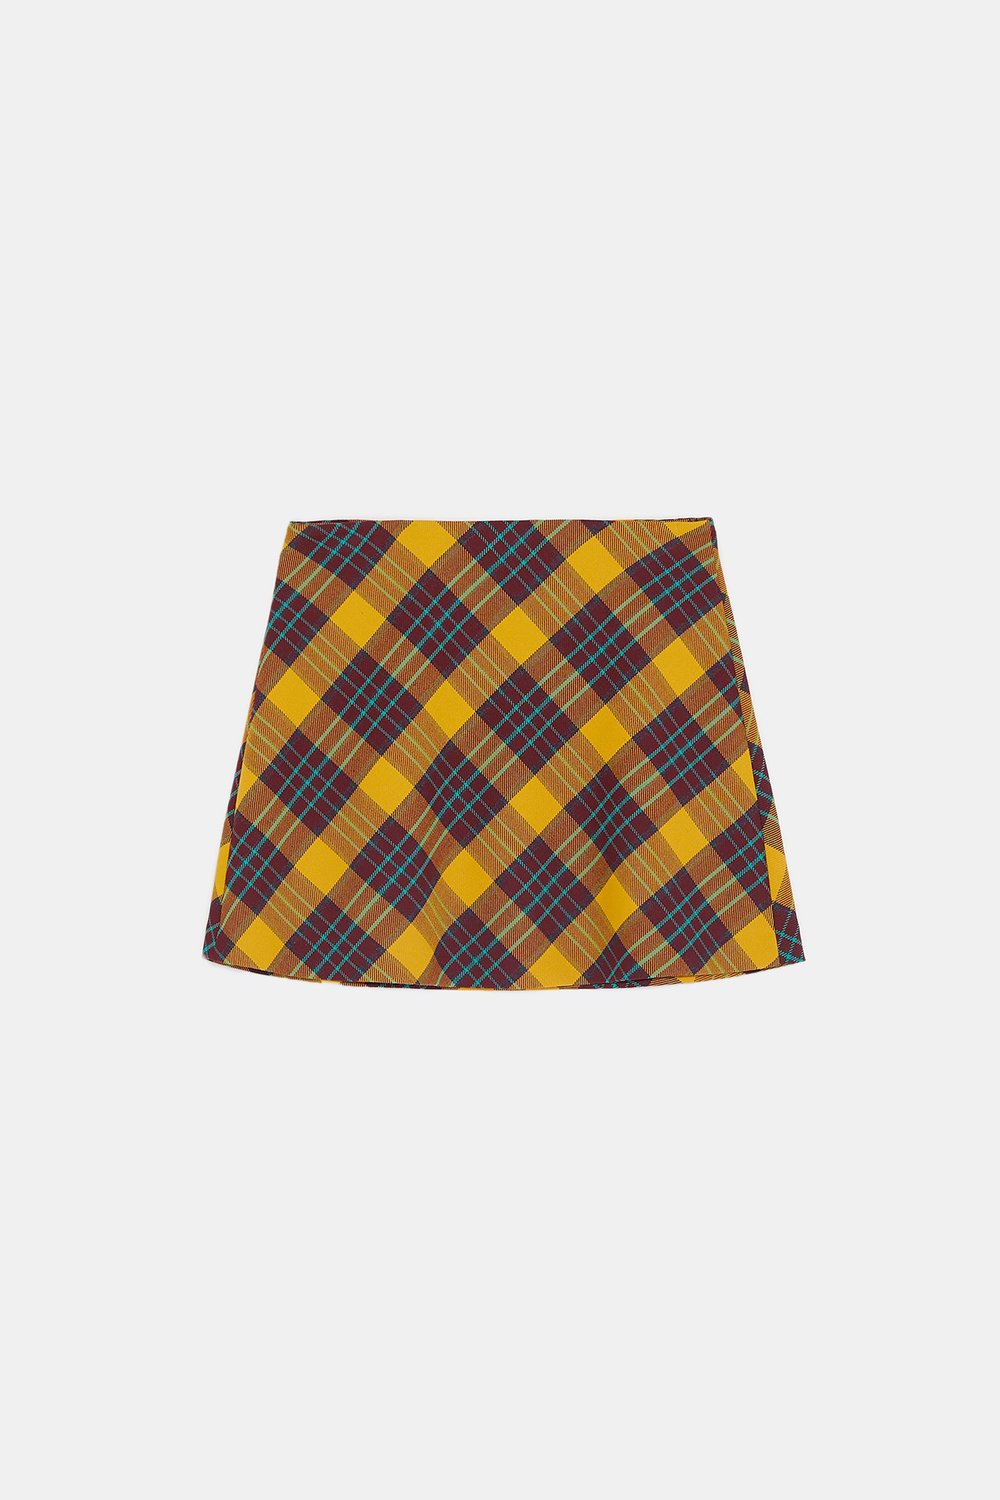 https://www.zara.com/ca/en/plaid-mini-skirt-p08125638.html?v1=7145562&v2=1074619